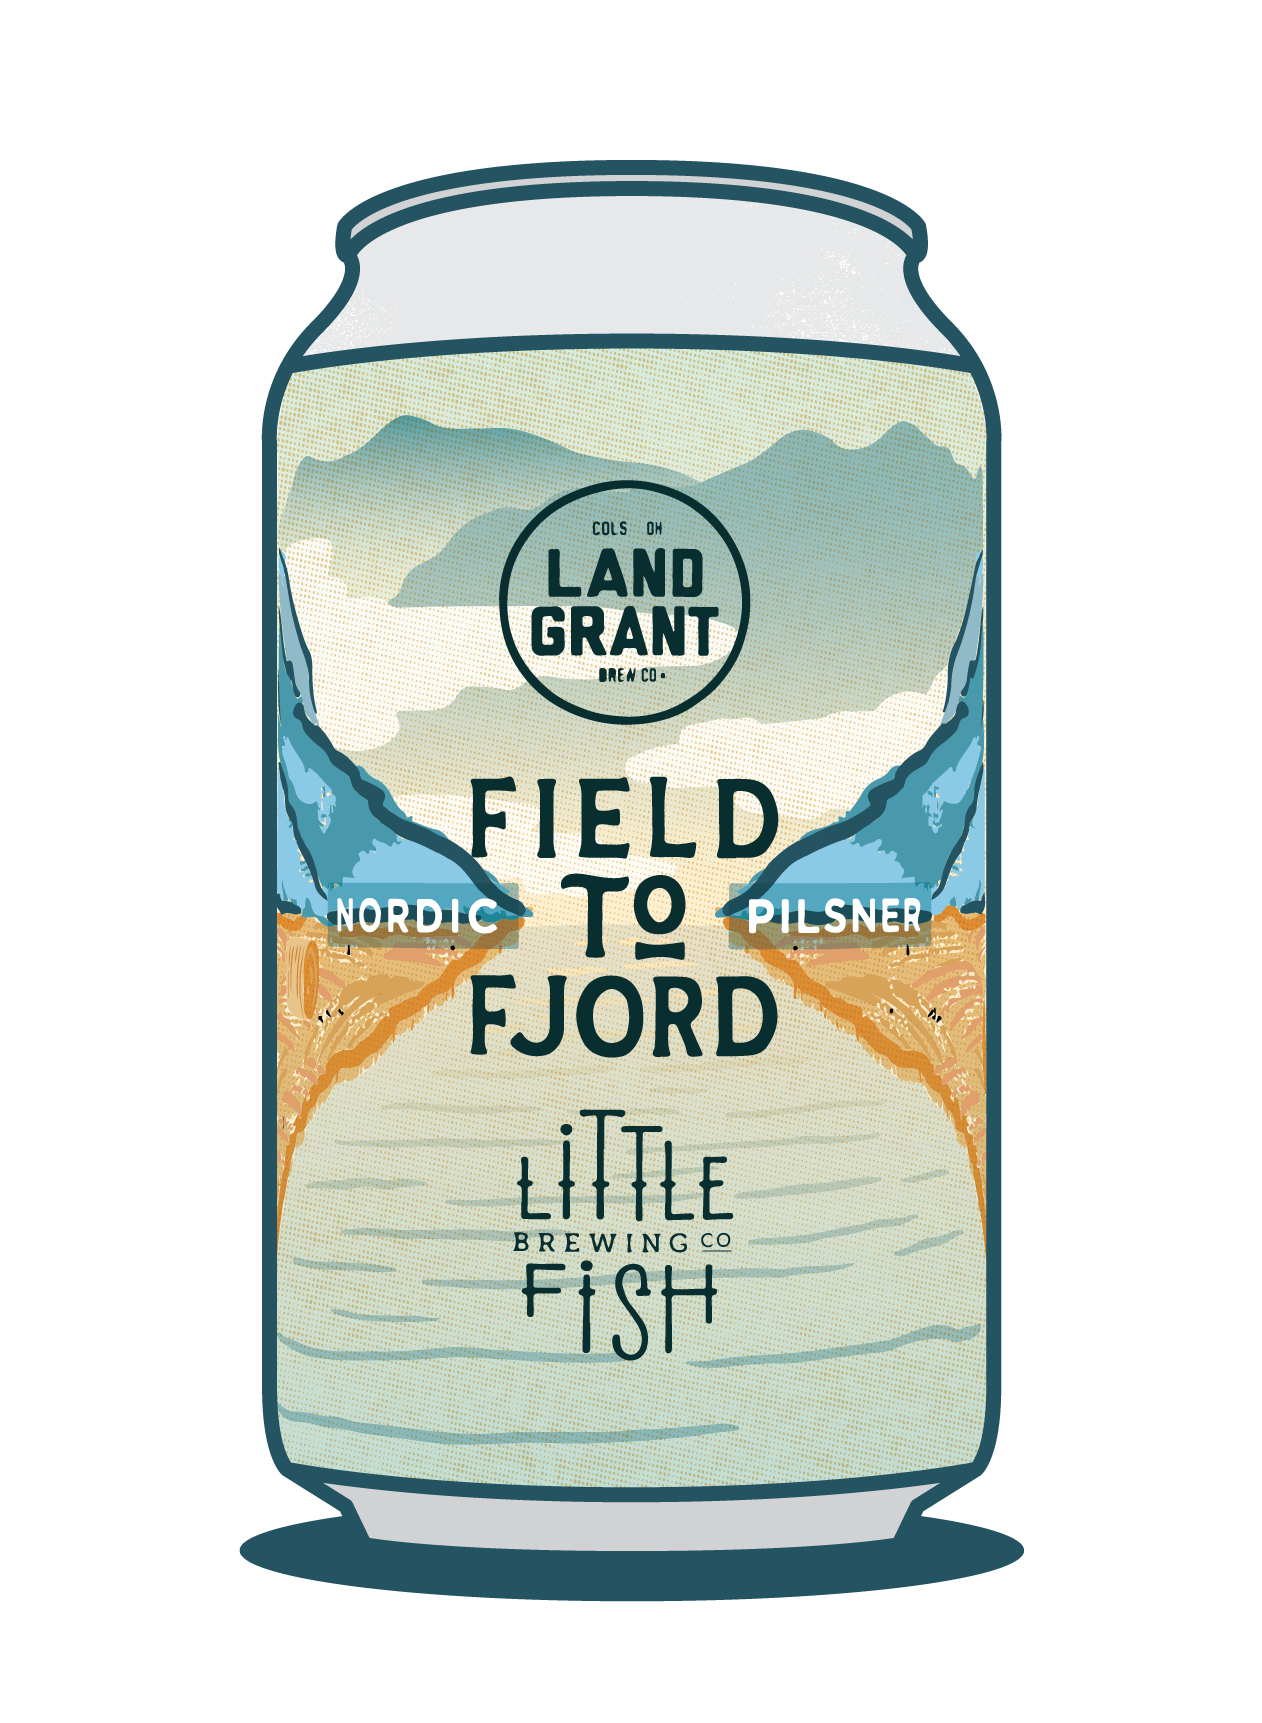 Field to Fjord Image